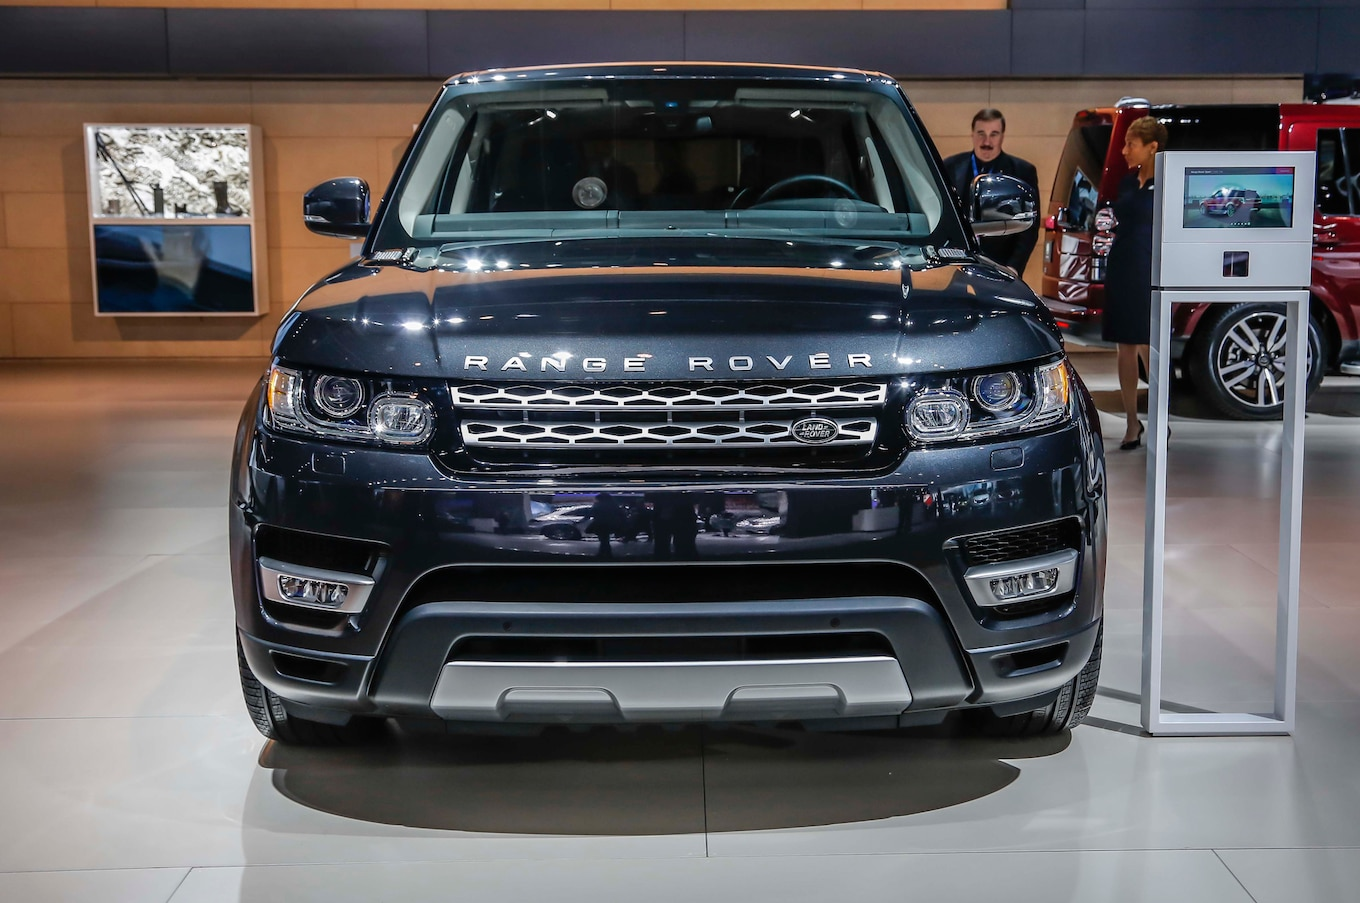 Six Things to Expect From Jaguar Land Rover in the Near Future